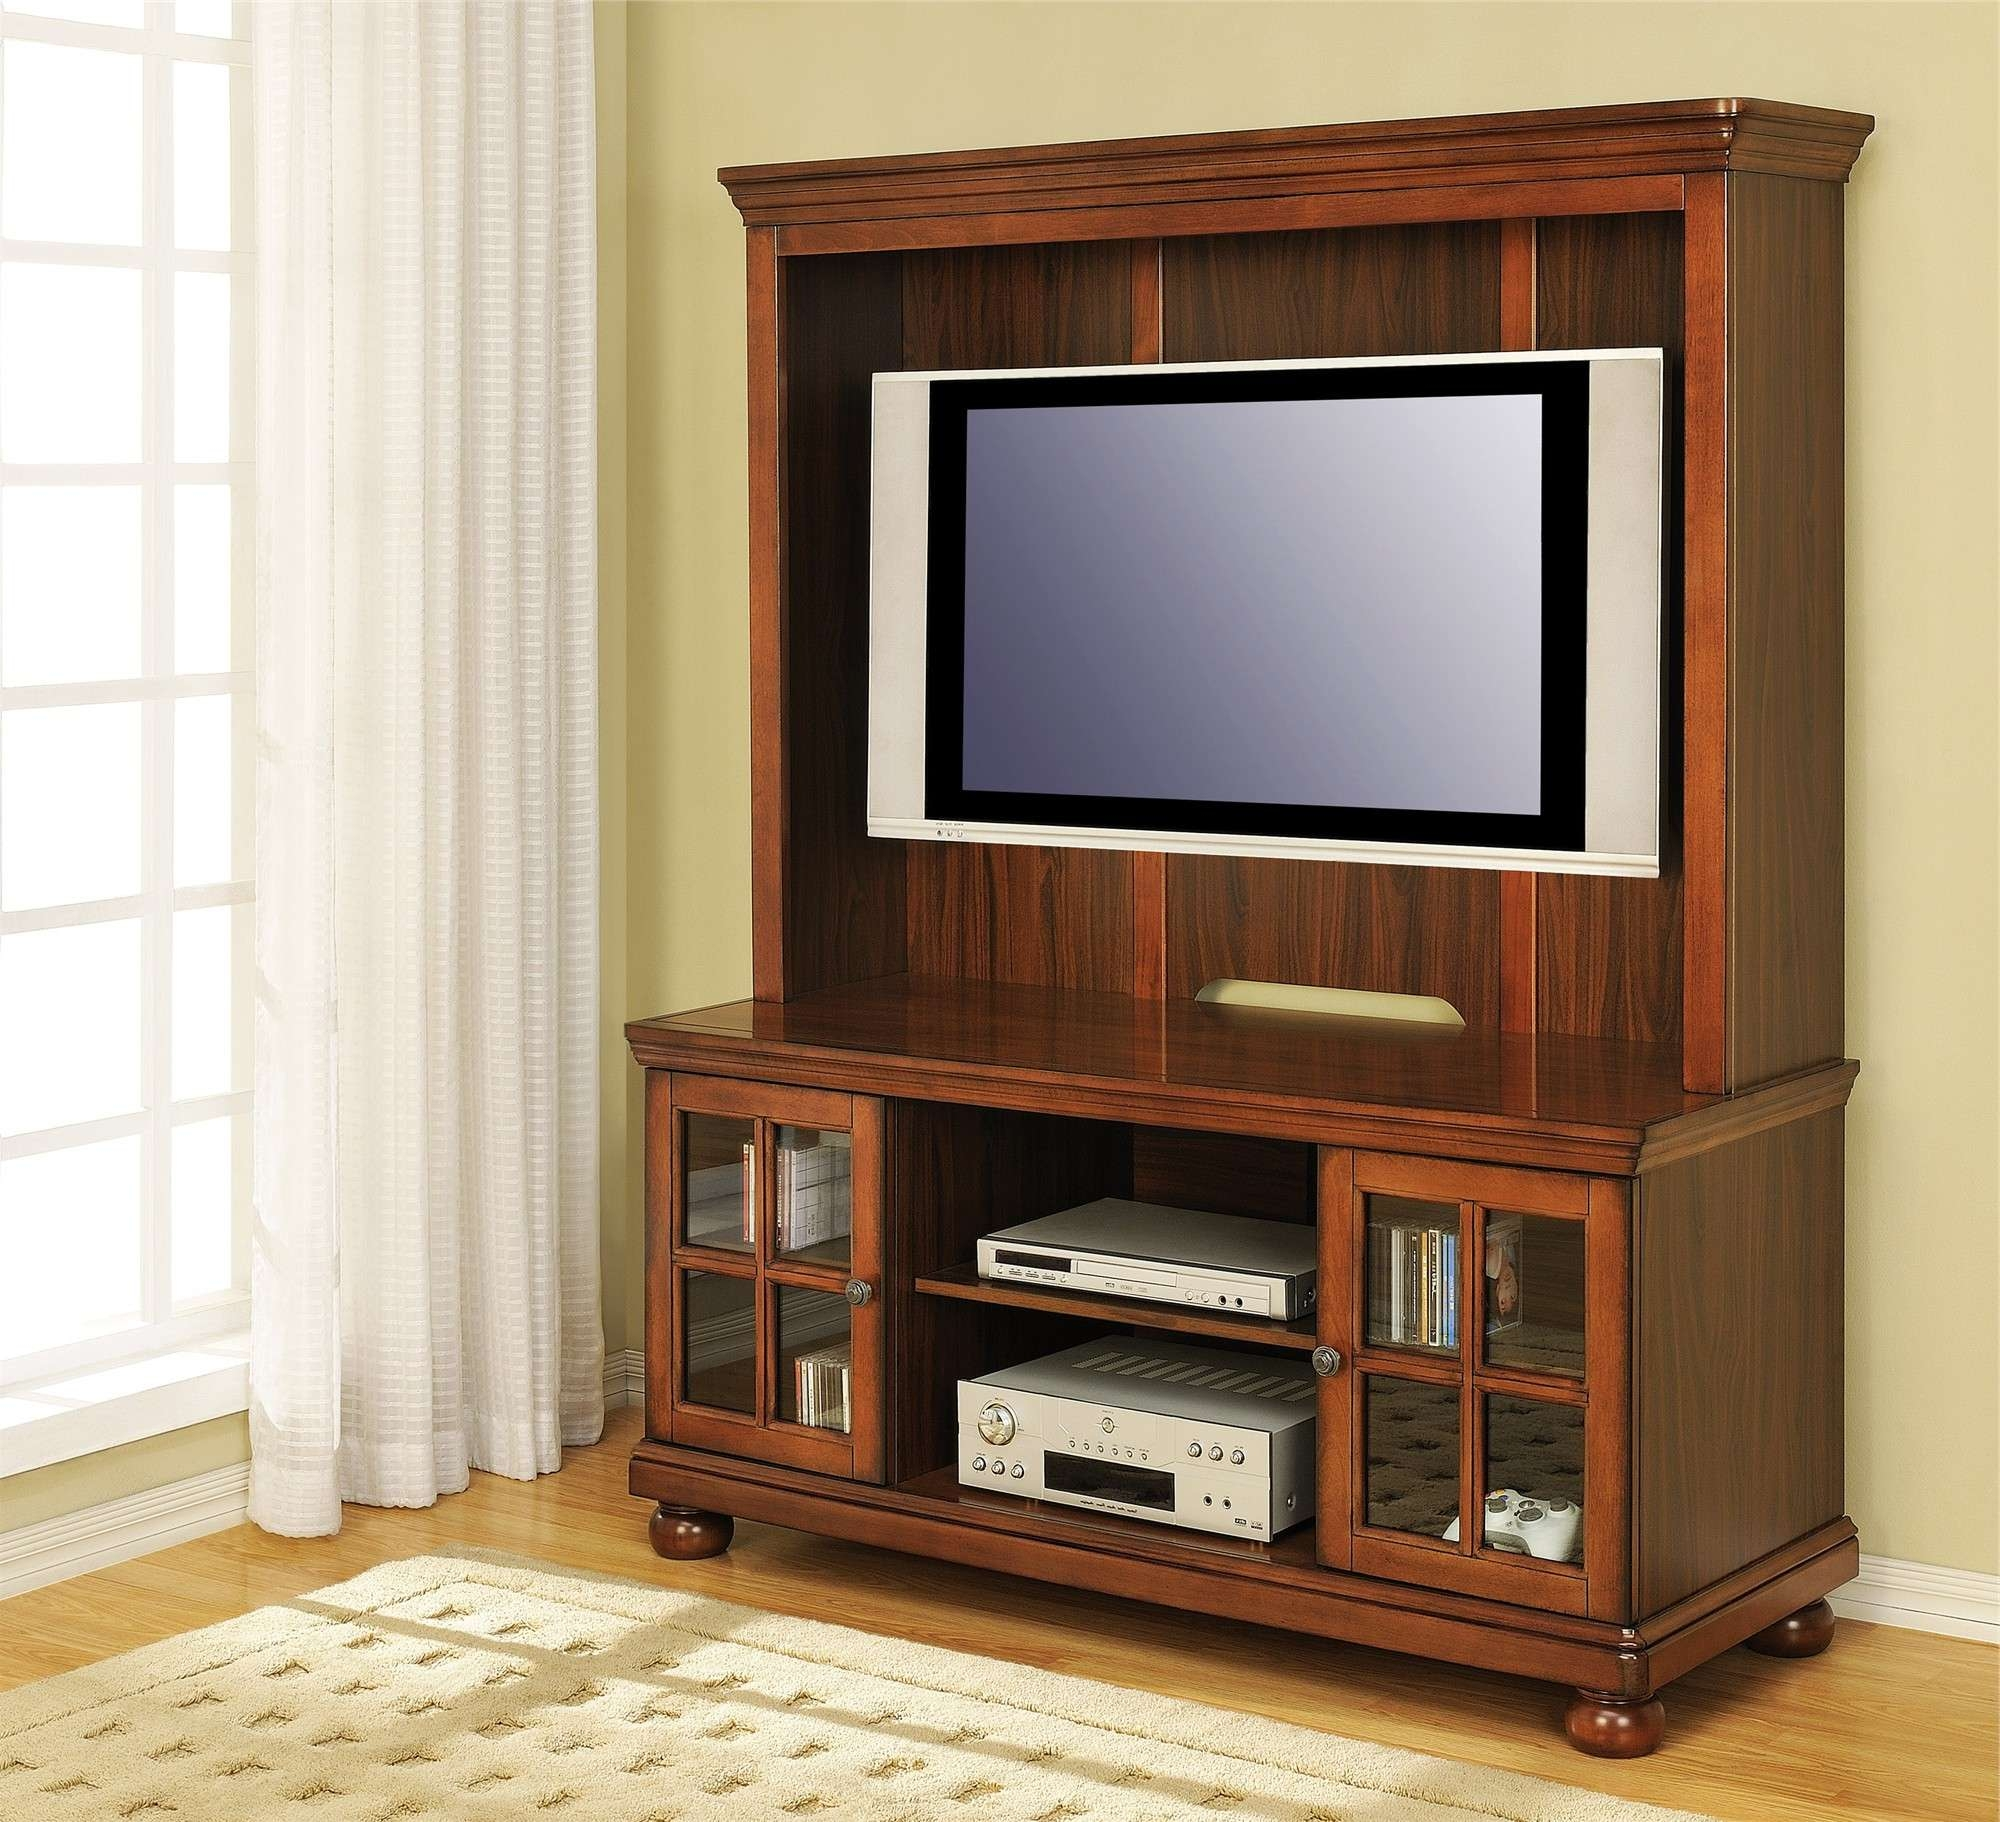 Modern Brown Oak Wood Media Cabinet With Mounted Tv Storage Regarding Corner Tv Cabinets For Flat Screens With Doors (View 15 of 20)